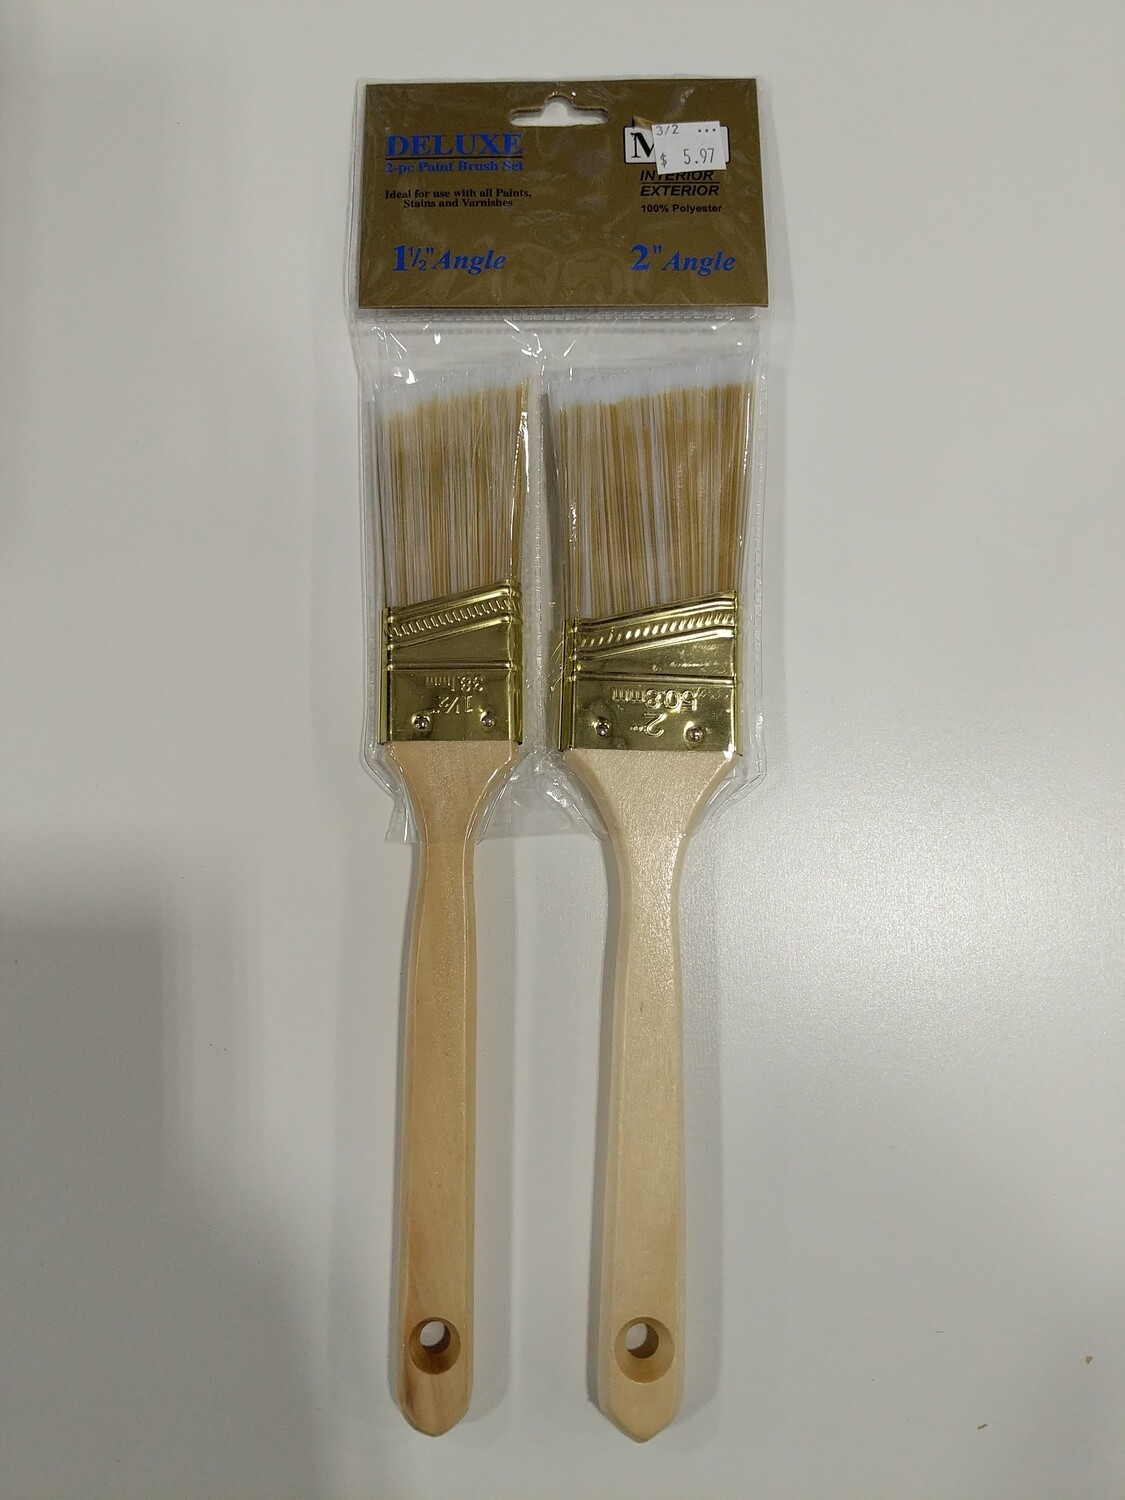 "PAINT BRUSH SET-- 2PC 1-1/2"" & 2"" ANGLED--'DELUXE' WOOD HANDLES"